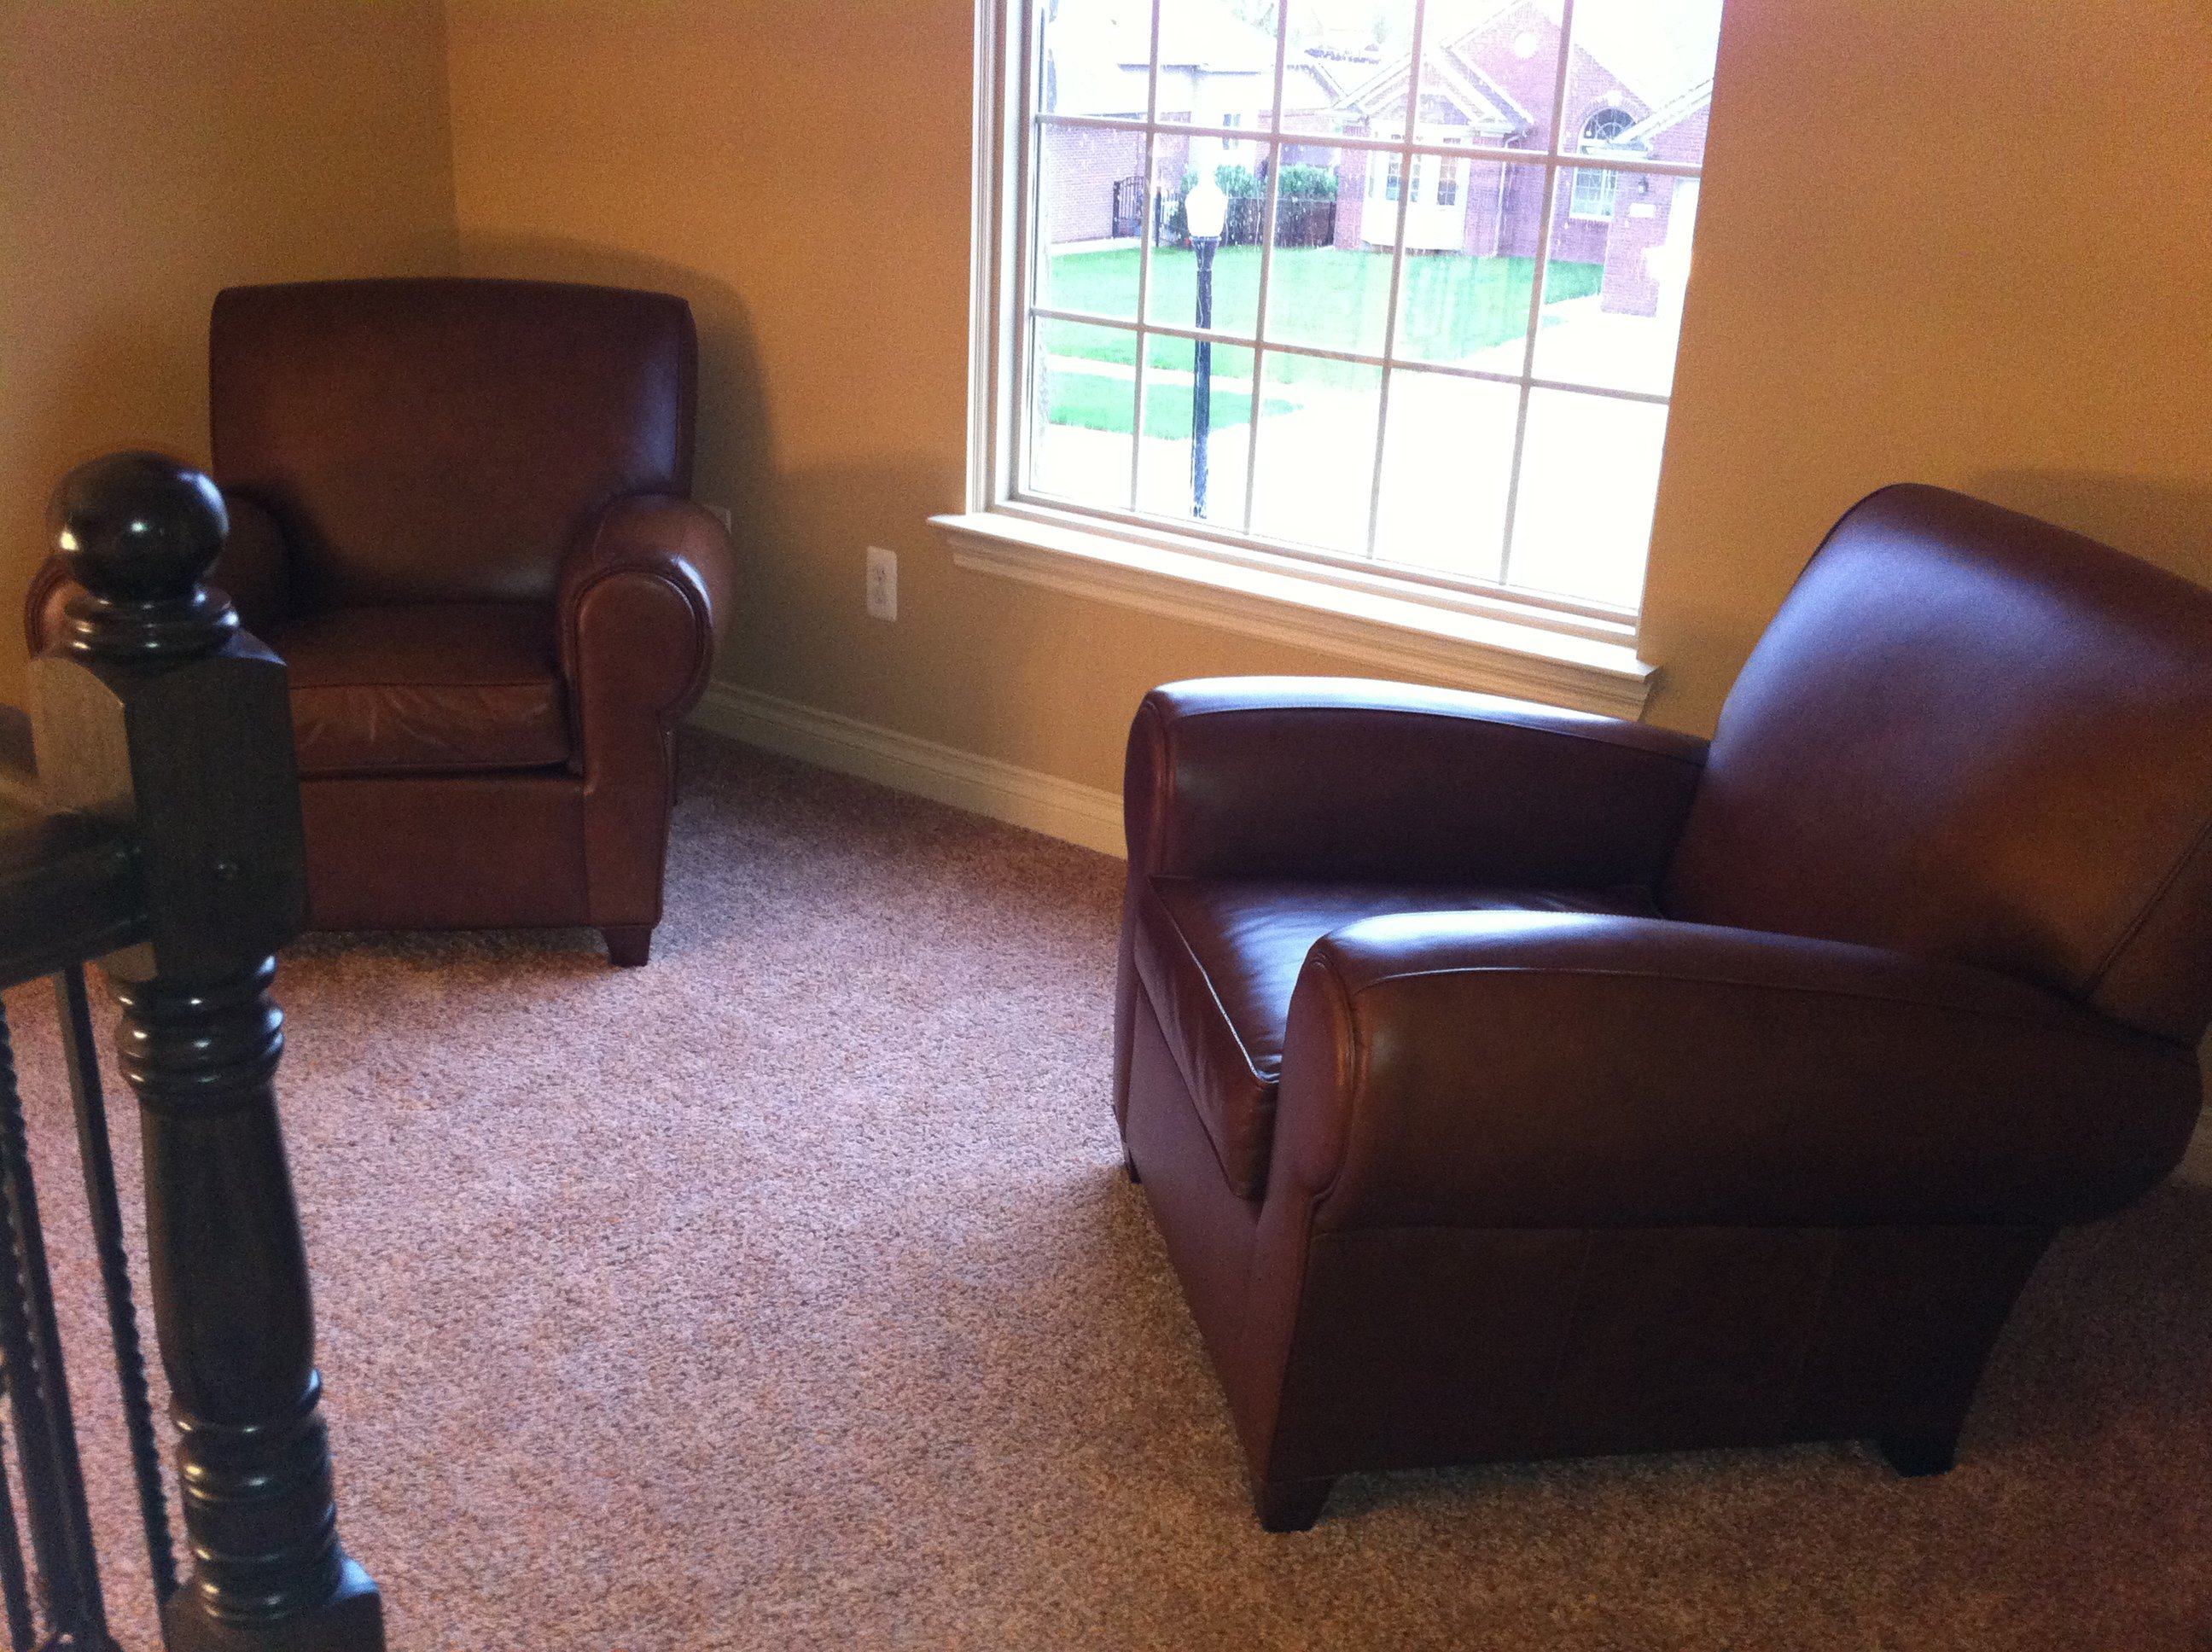 pottery leather barn design look don barns recliner t comfort that new recliners like pin three